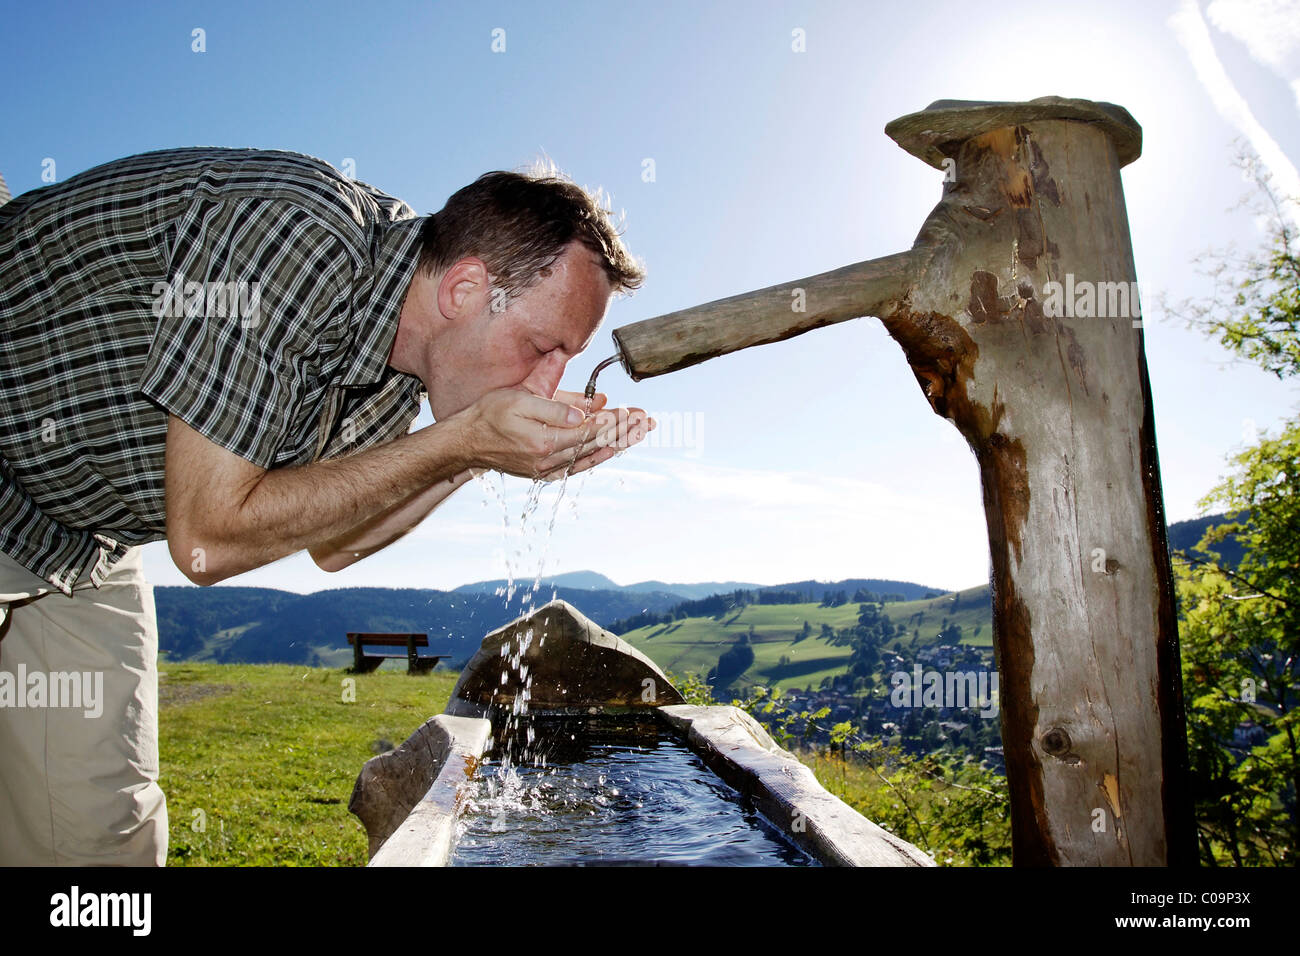 A man in his mid 40 quenches his thirst at a well, Todtnauberg in the Black Forest, Baden-Wuerttemberg, Germany, - Stock Image